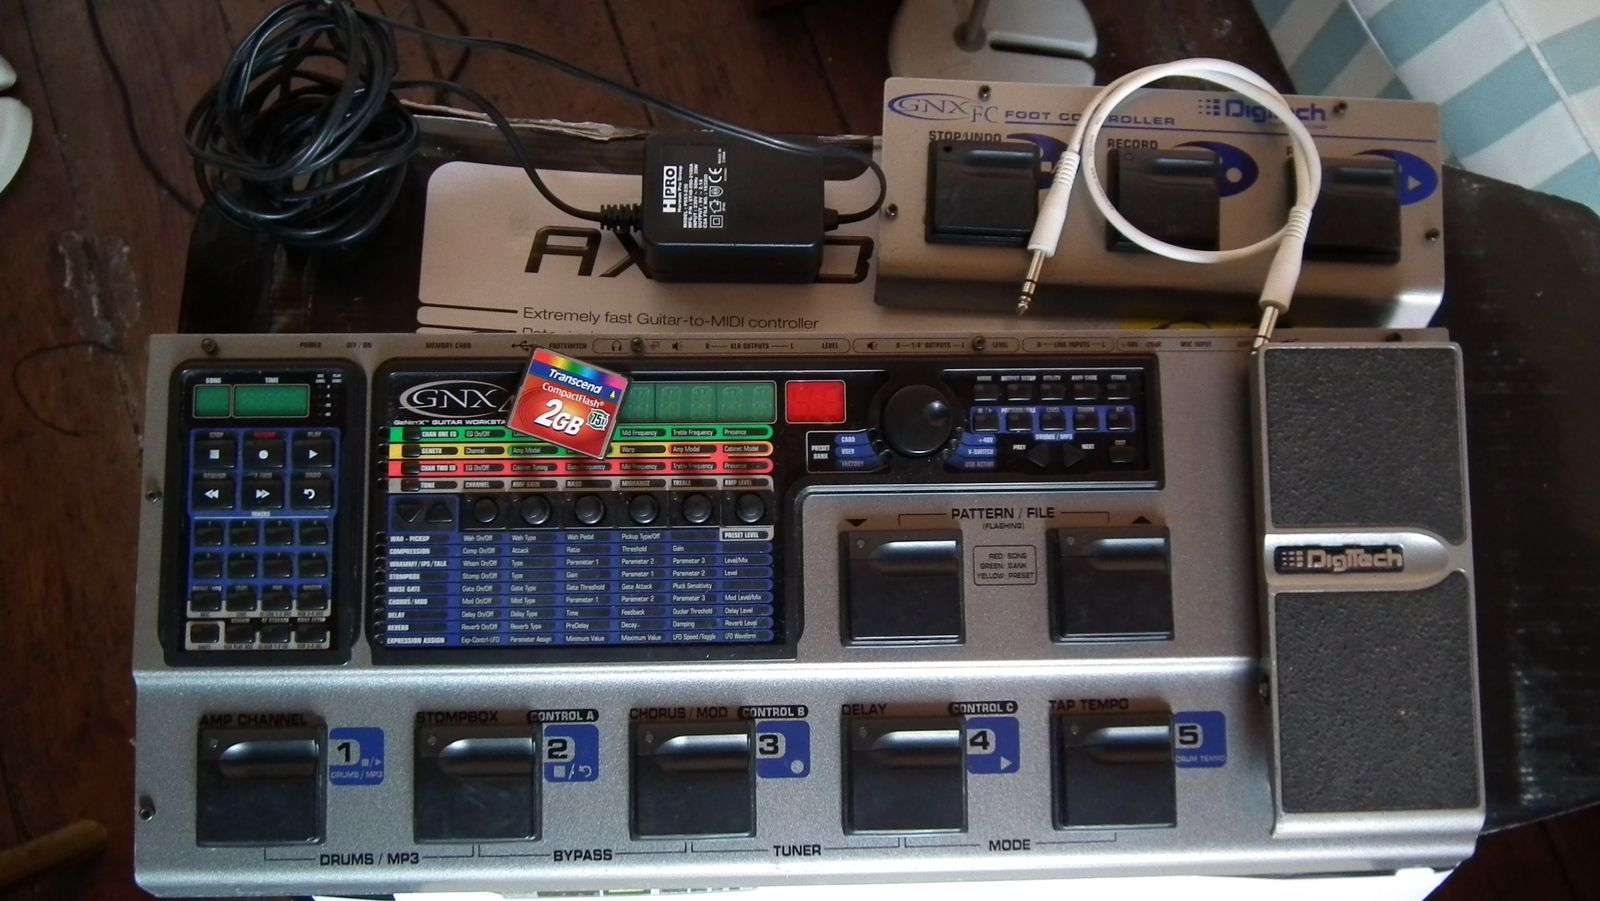 DigiTech GNX4 Guitar Work Station archiechansons images